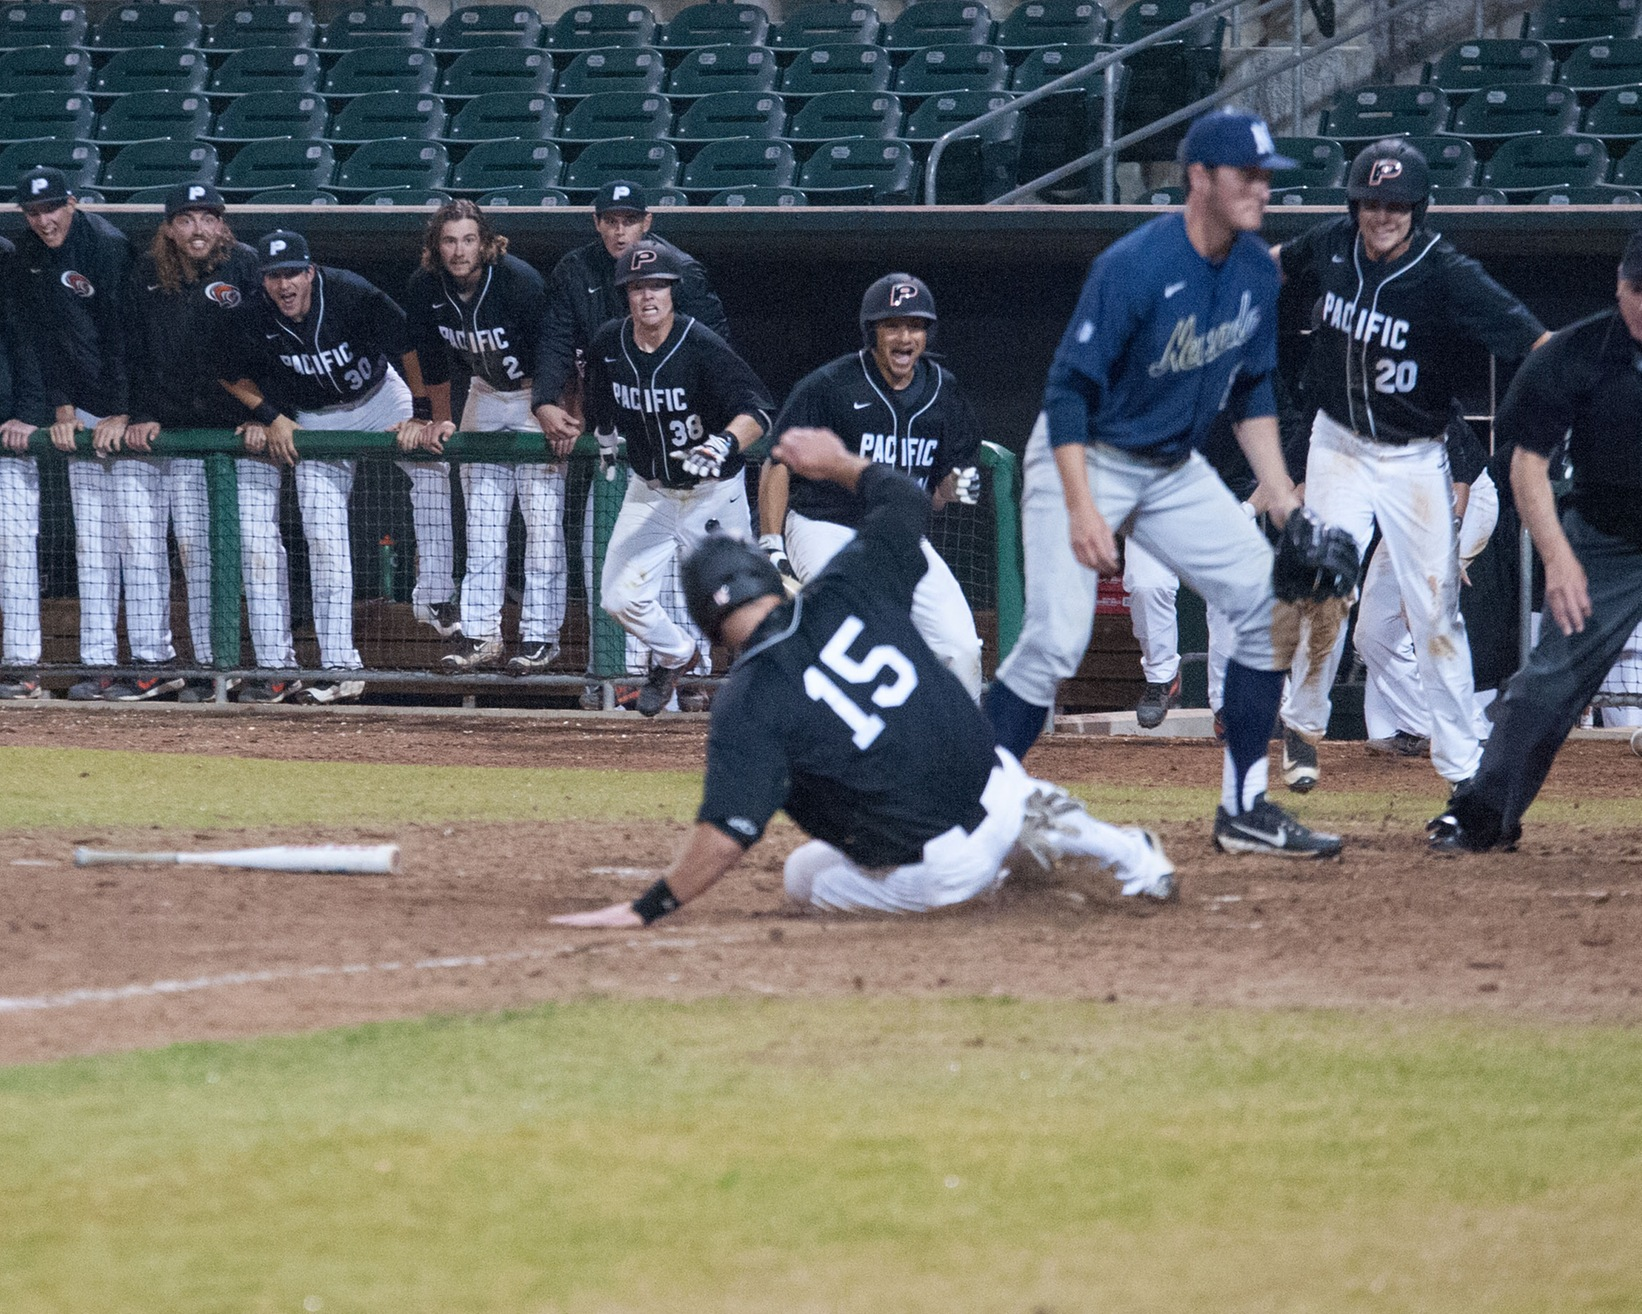 Pacific Defeats Nevada in Extra Innings, 10-9